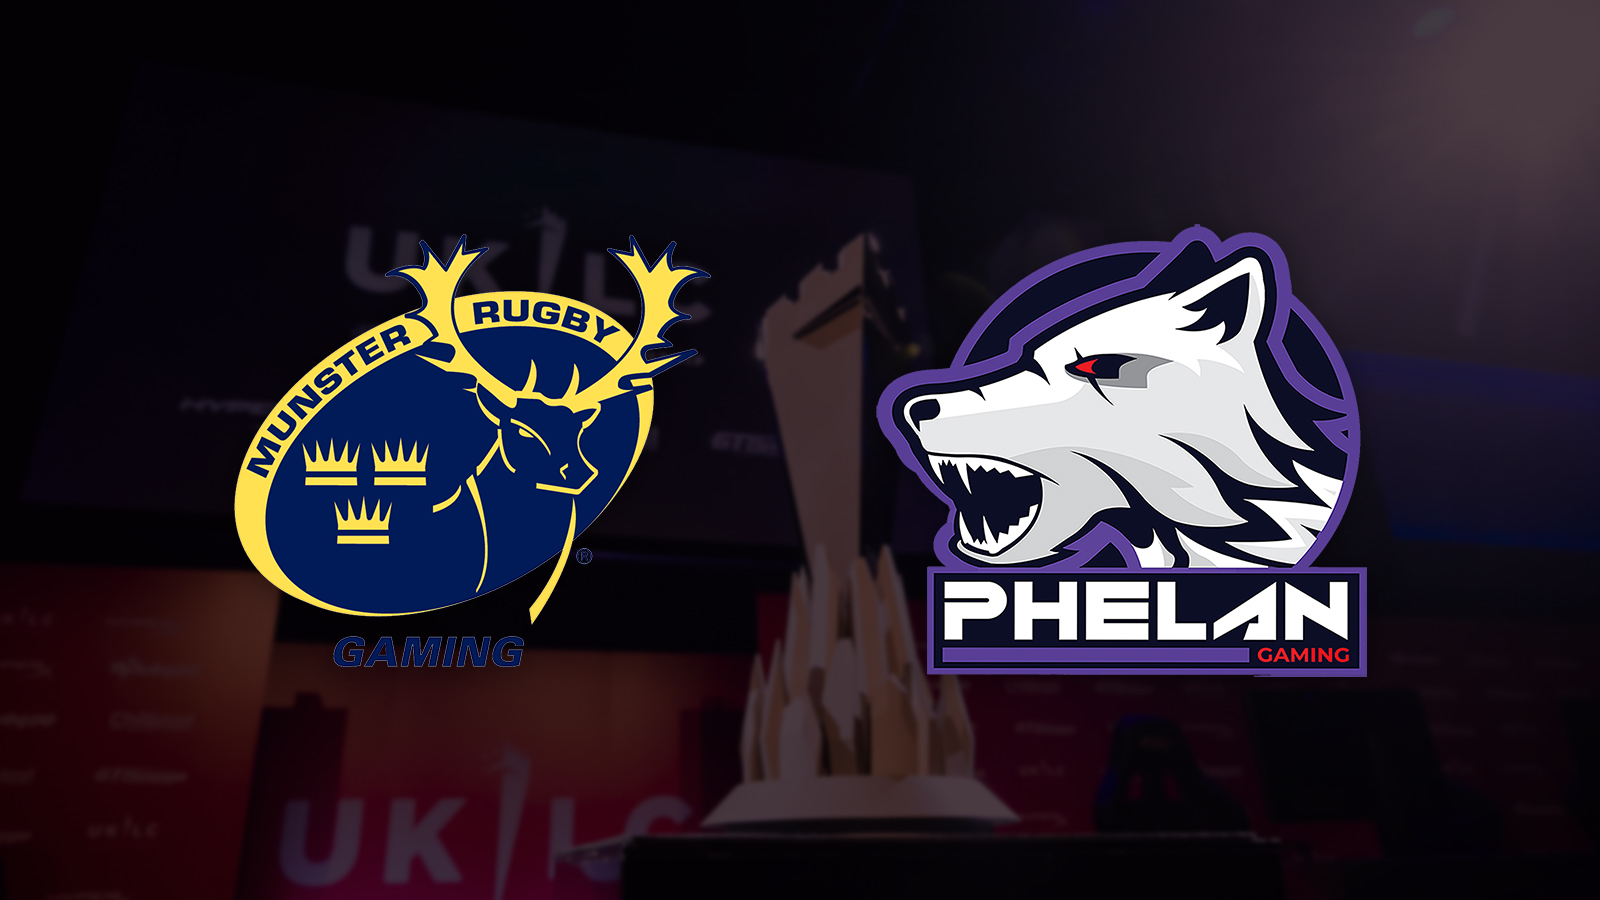 Munster Rugby Gaming ends deal with Phelan Gaming